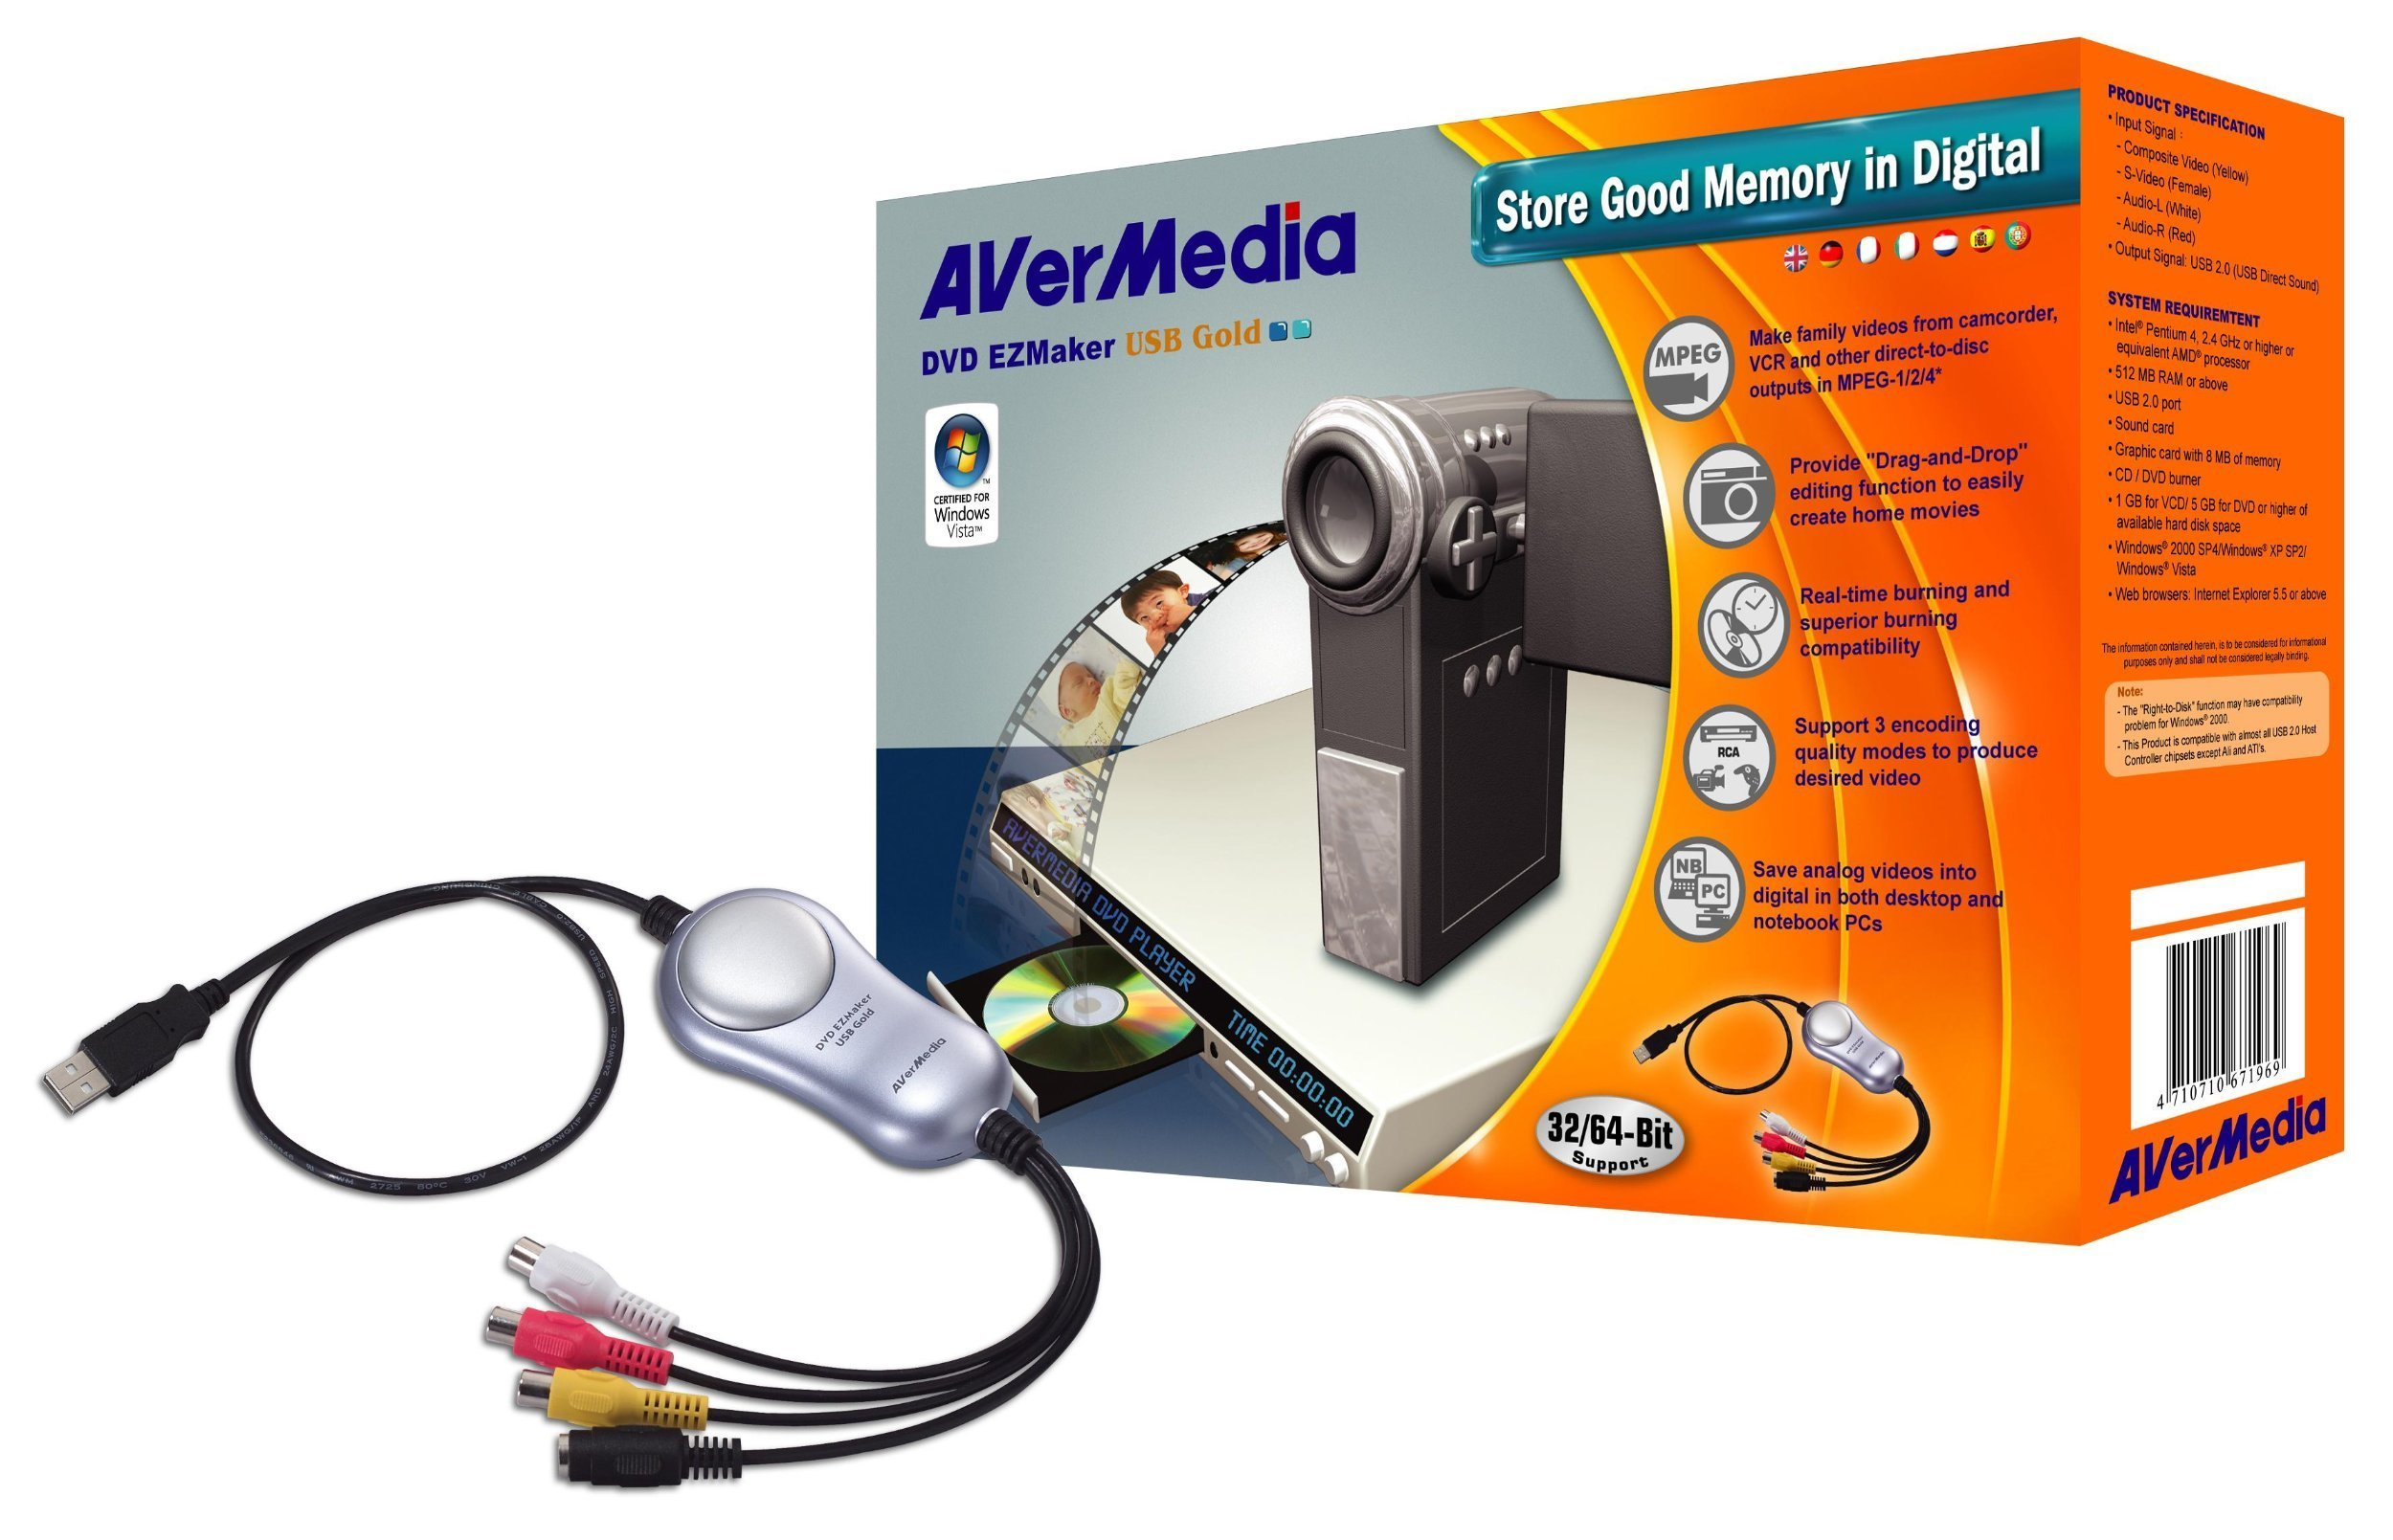 AVerMedia C038 DVD EZMaker USB Gold - convert VHS to DVD with ease by AVerMedia